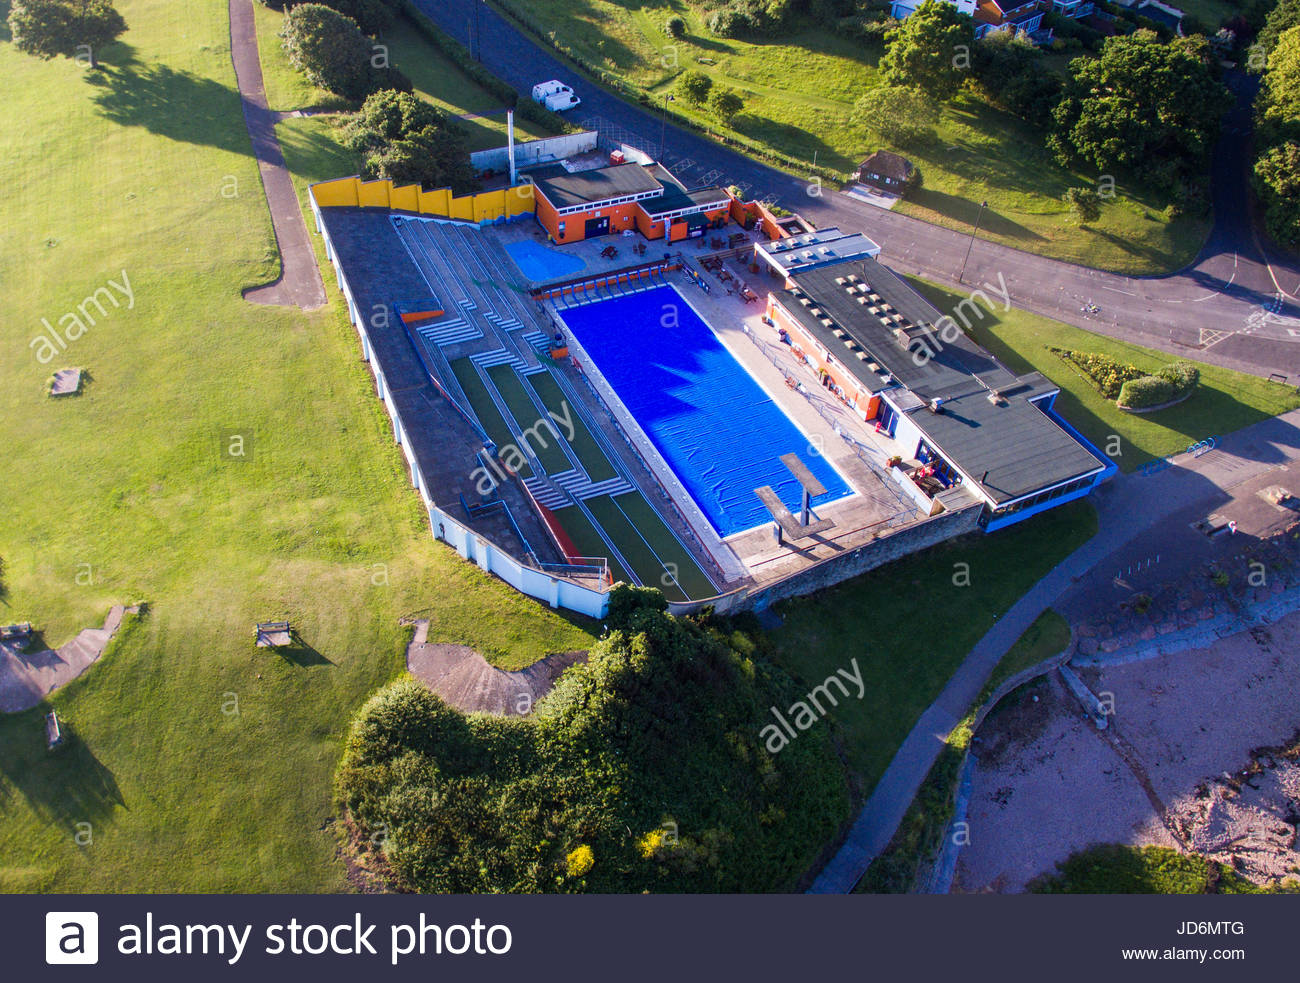 portishead, uk - june 18, 2017: the open air swimming pool and